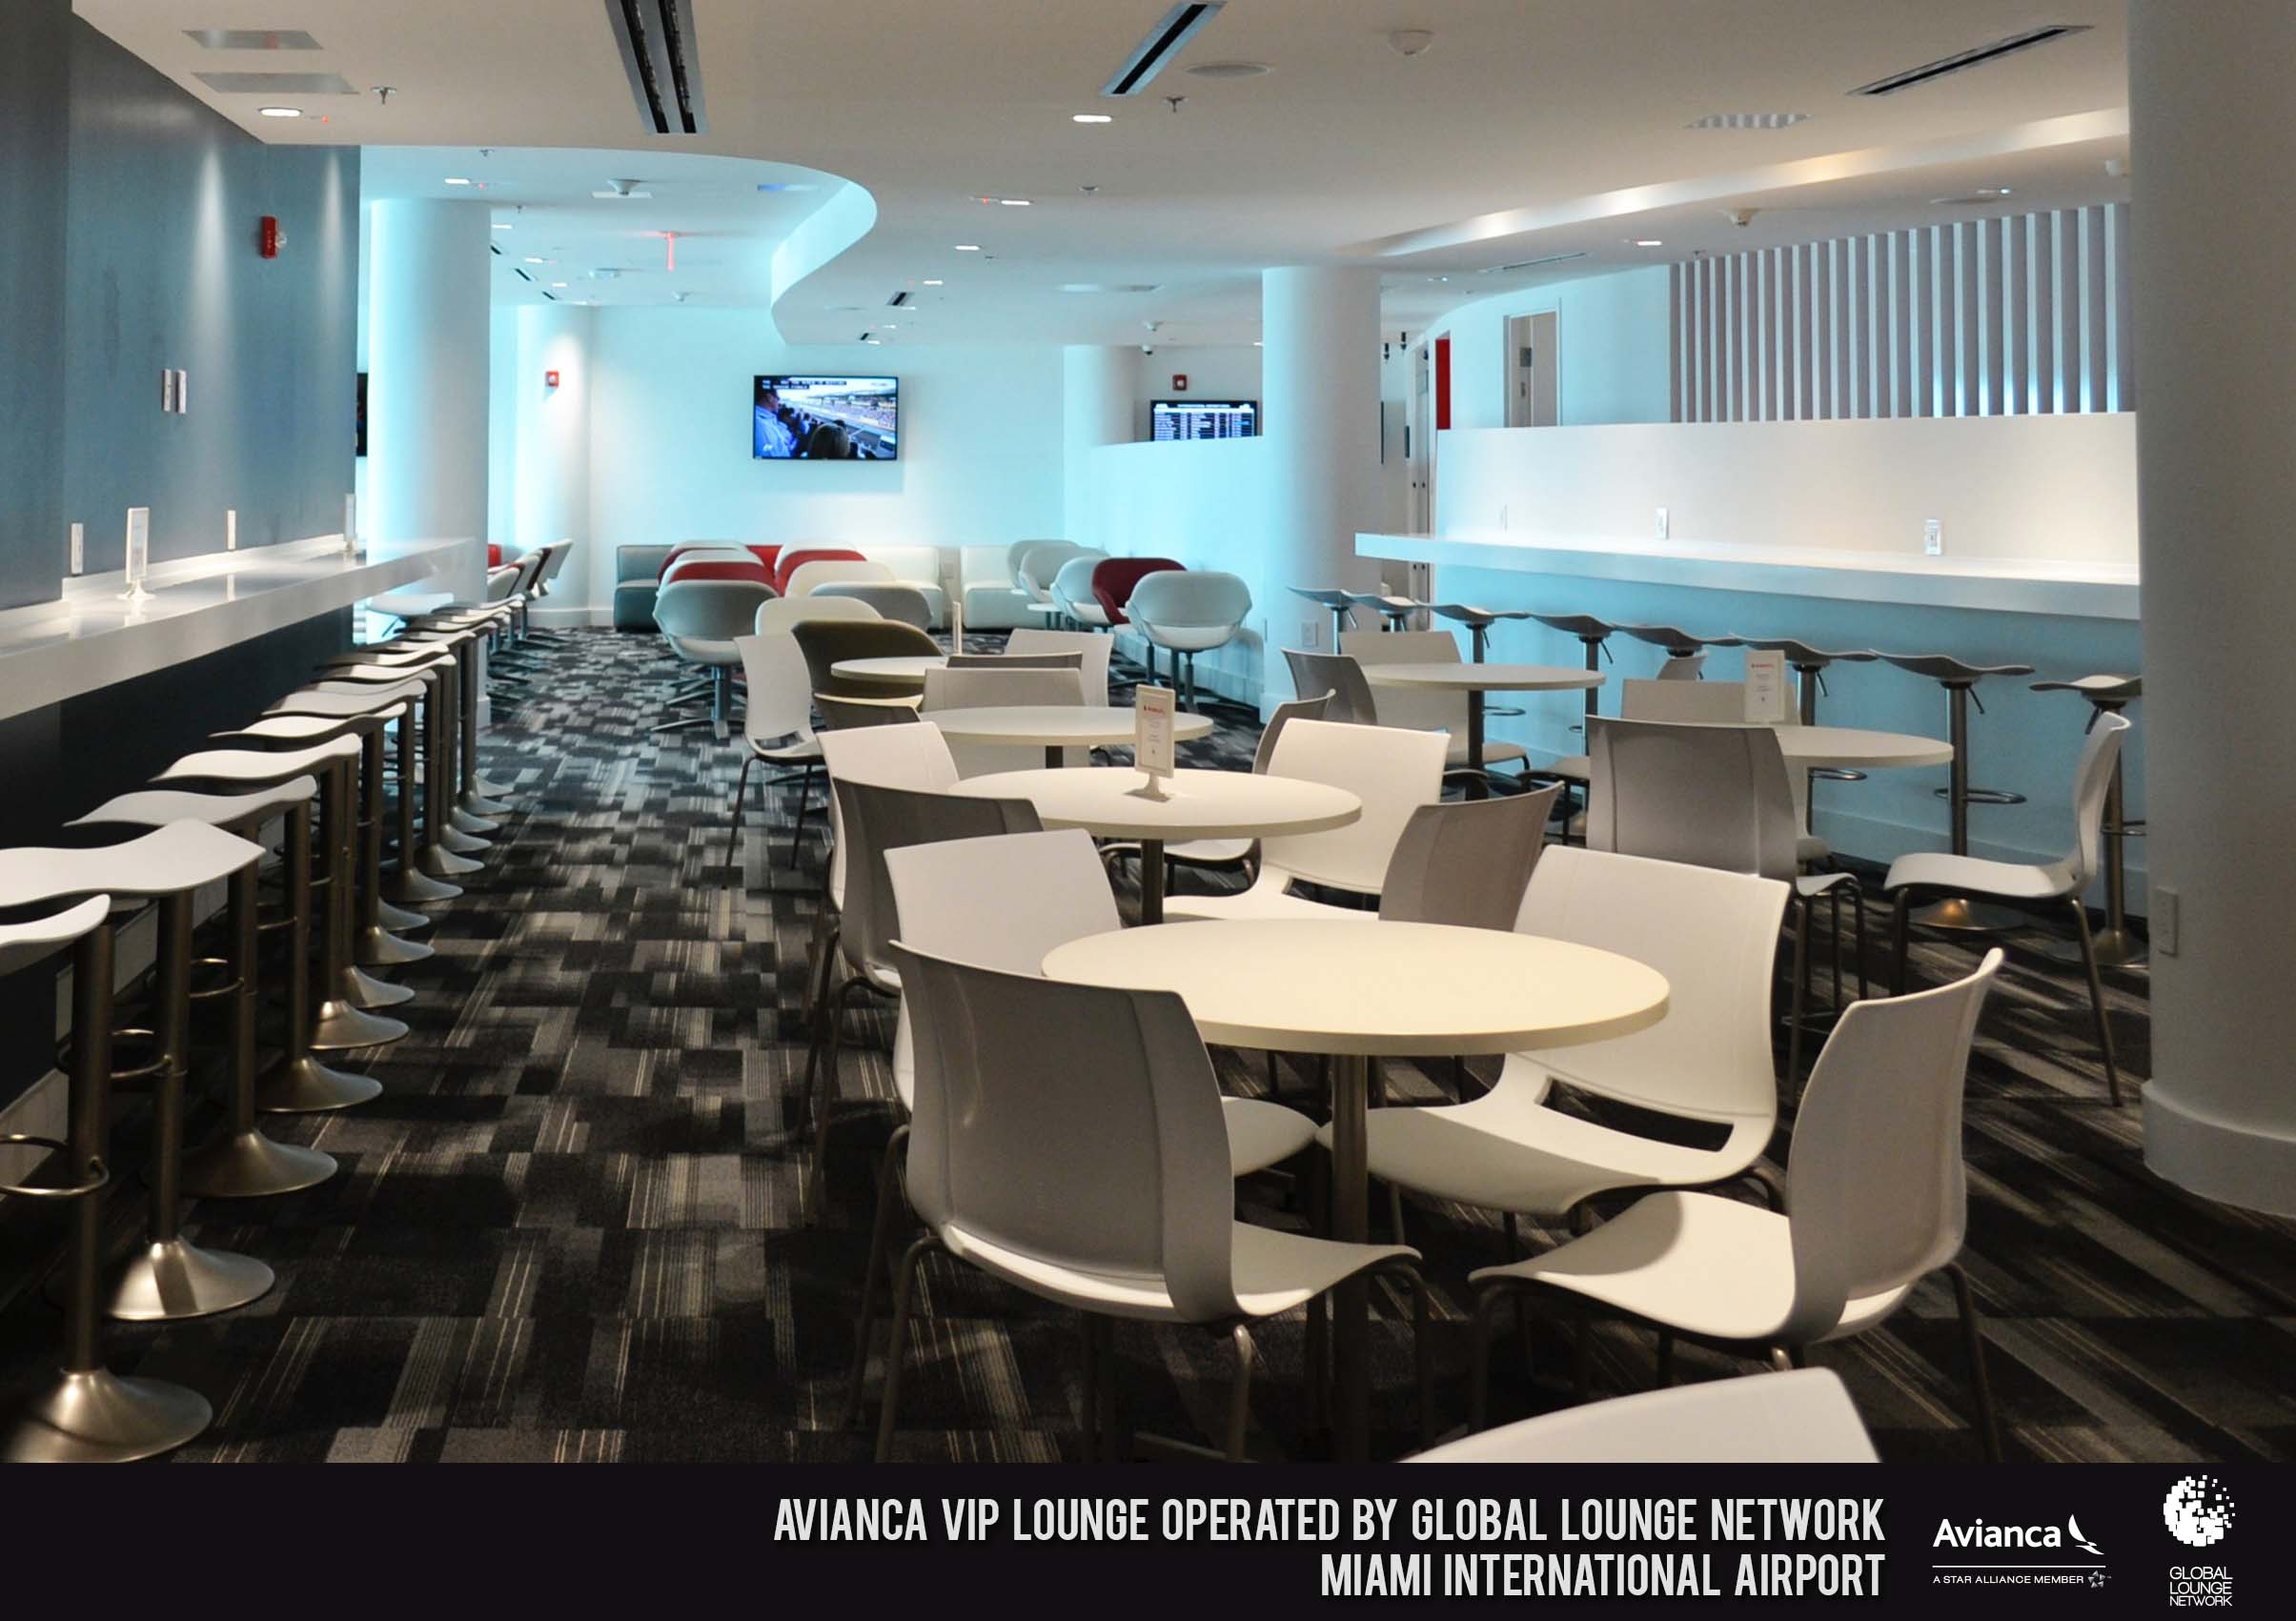 vip clubs & lounges - miami international airport